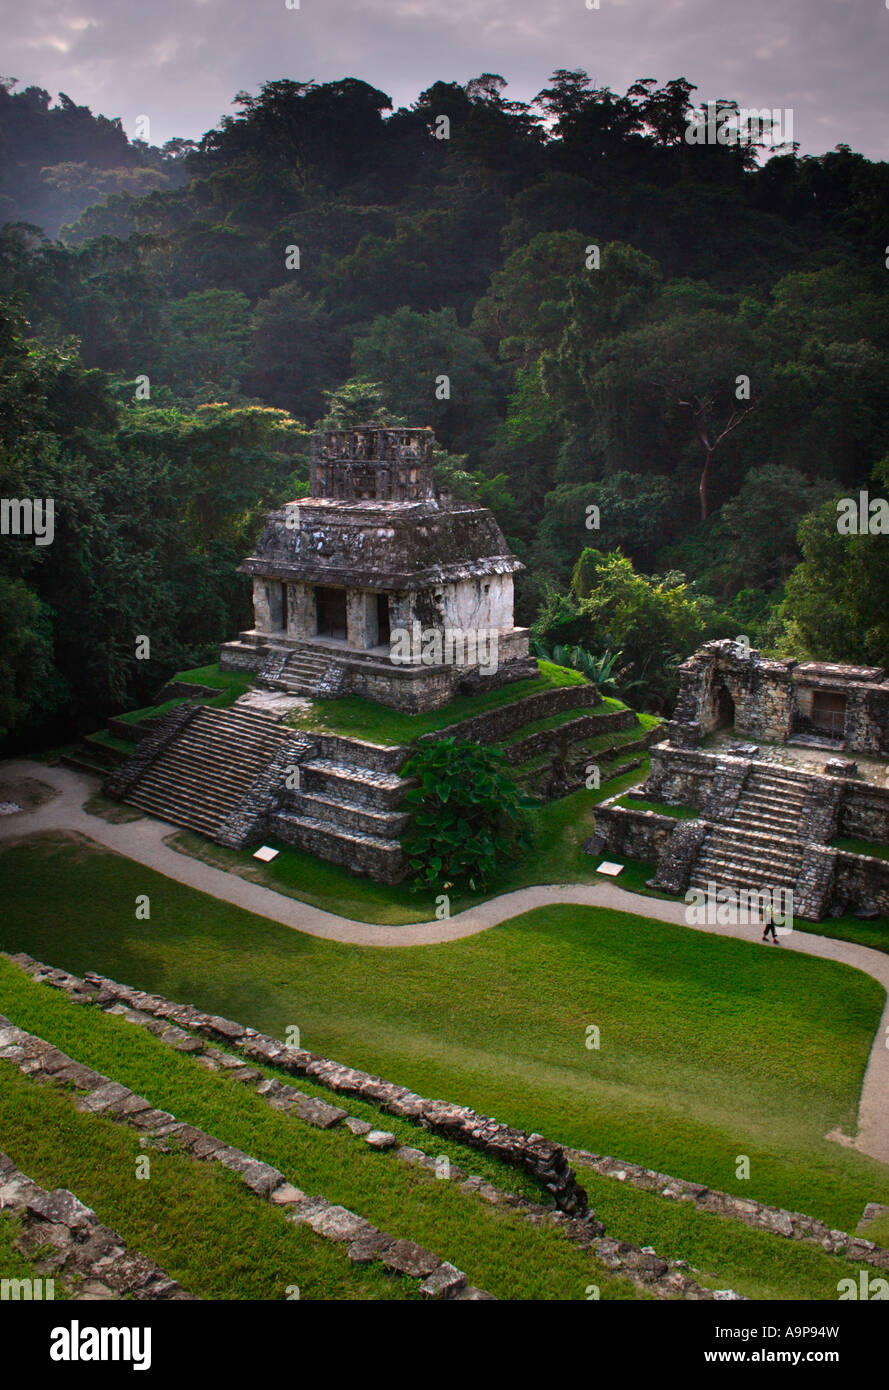 Palenque, Temple of the Sun, Mayan archaeological ruin site, Chiapas, Mexico - Stock Image